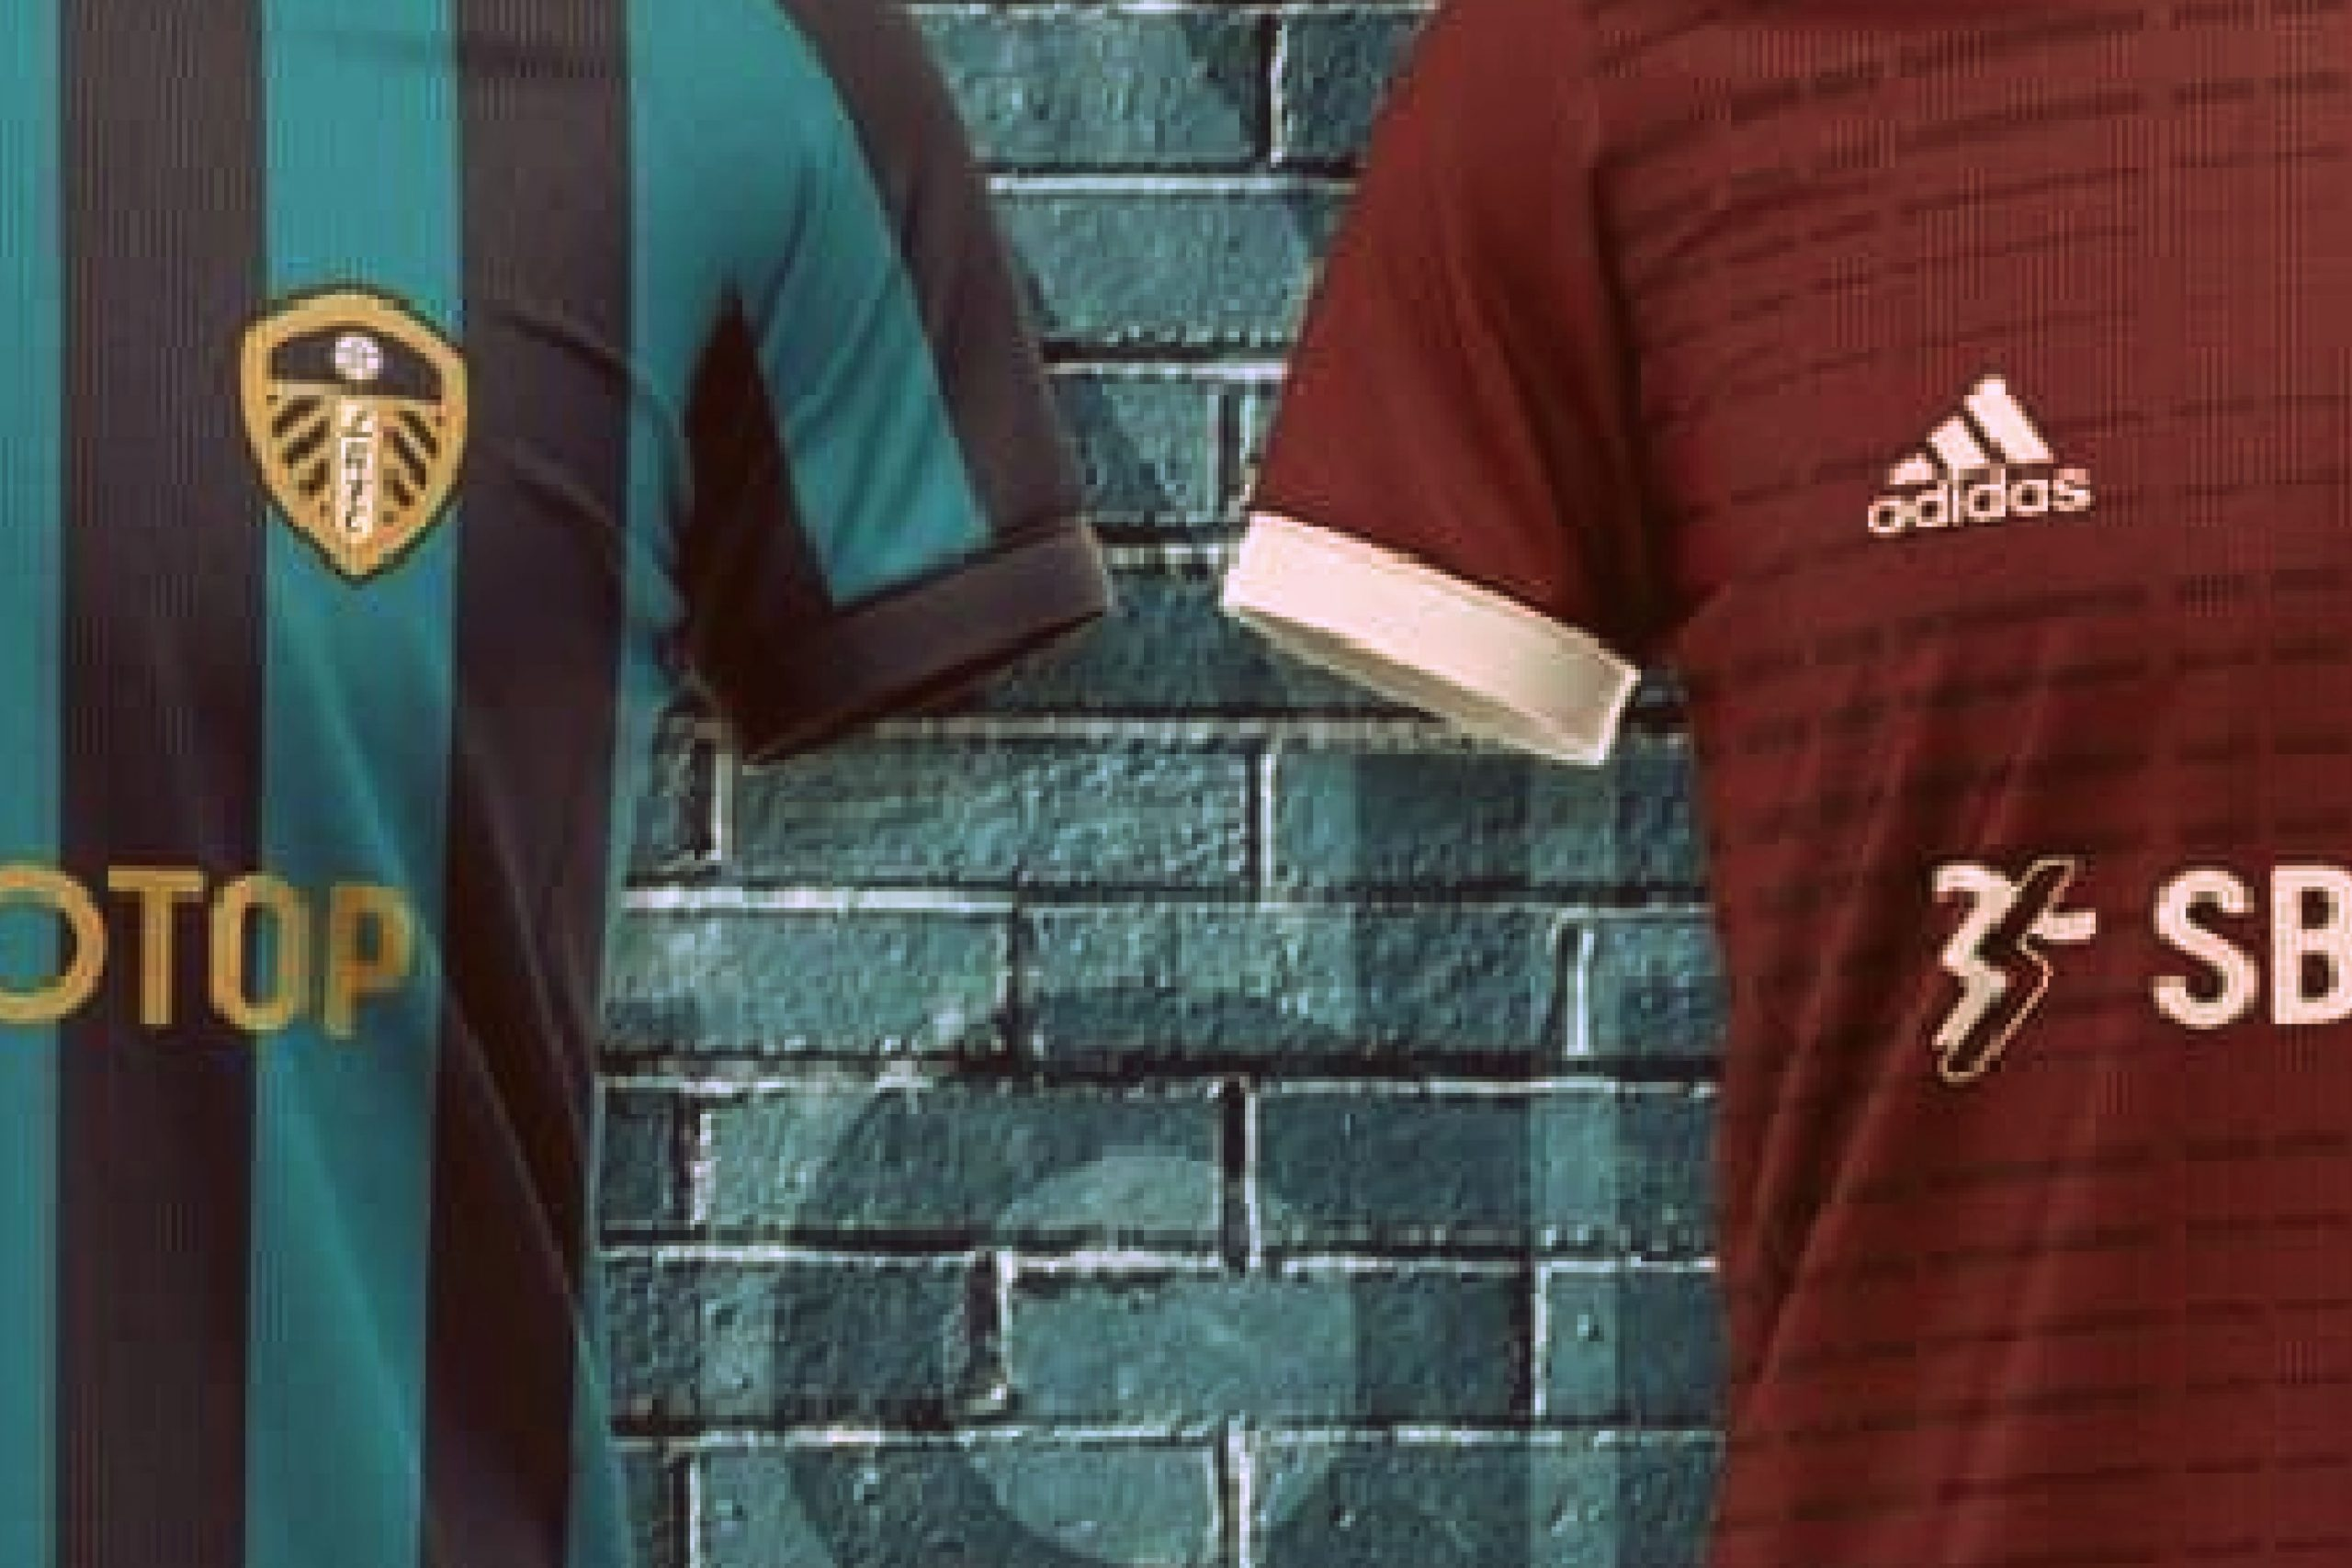 New Leaks Of Leeds United S Away And Possible Third Kit For 20 21 Season From Adidas Arrive Online Thick Accent